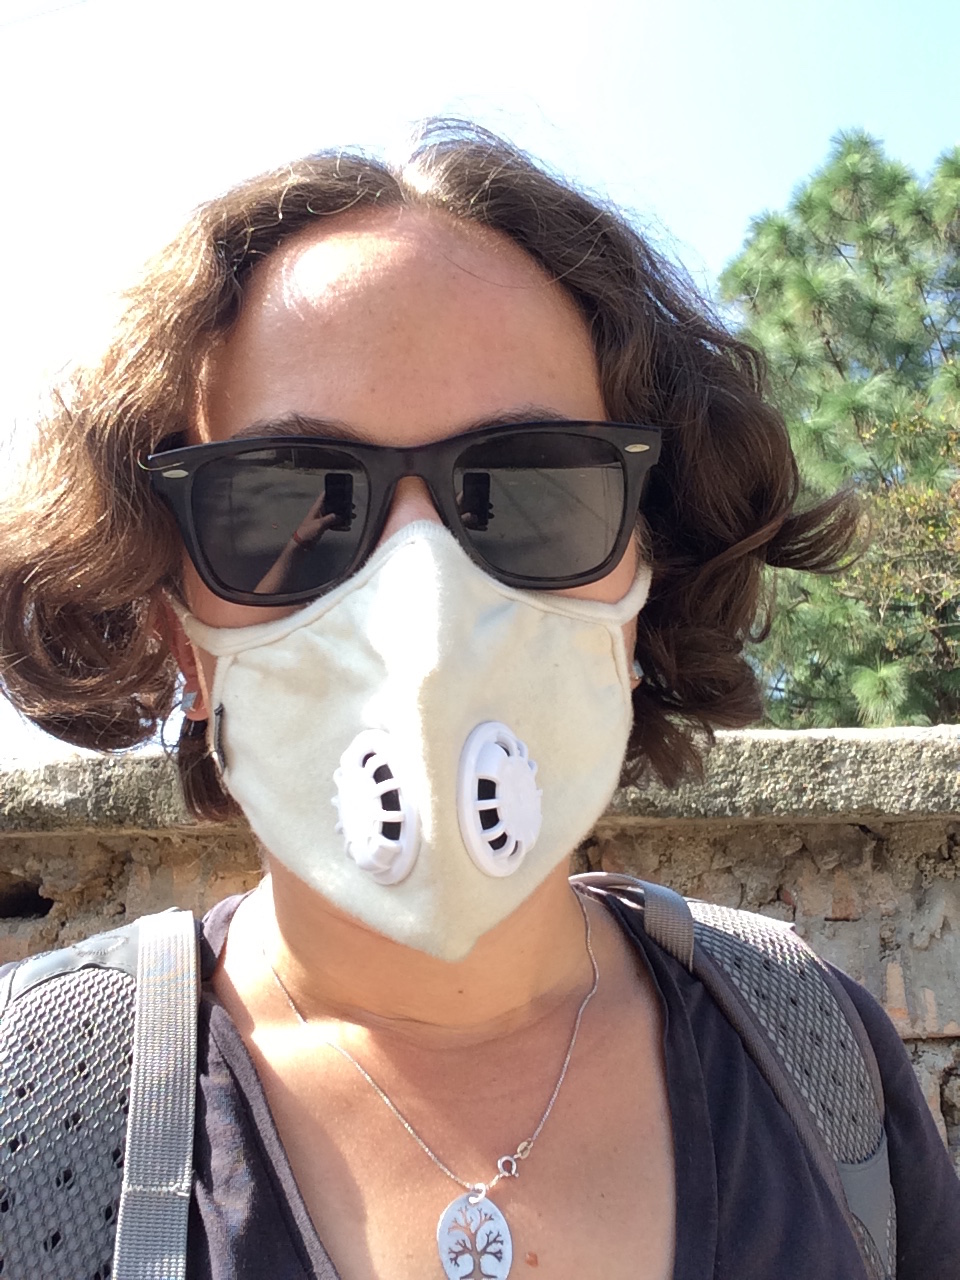 A selfie in my freshly-washed trusty VogMask and dust-protecting sunglasses